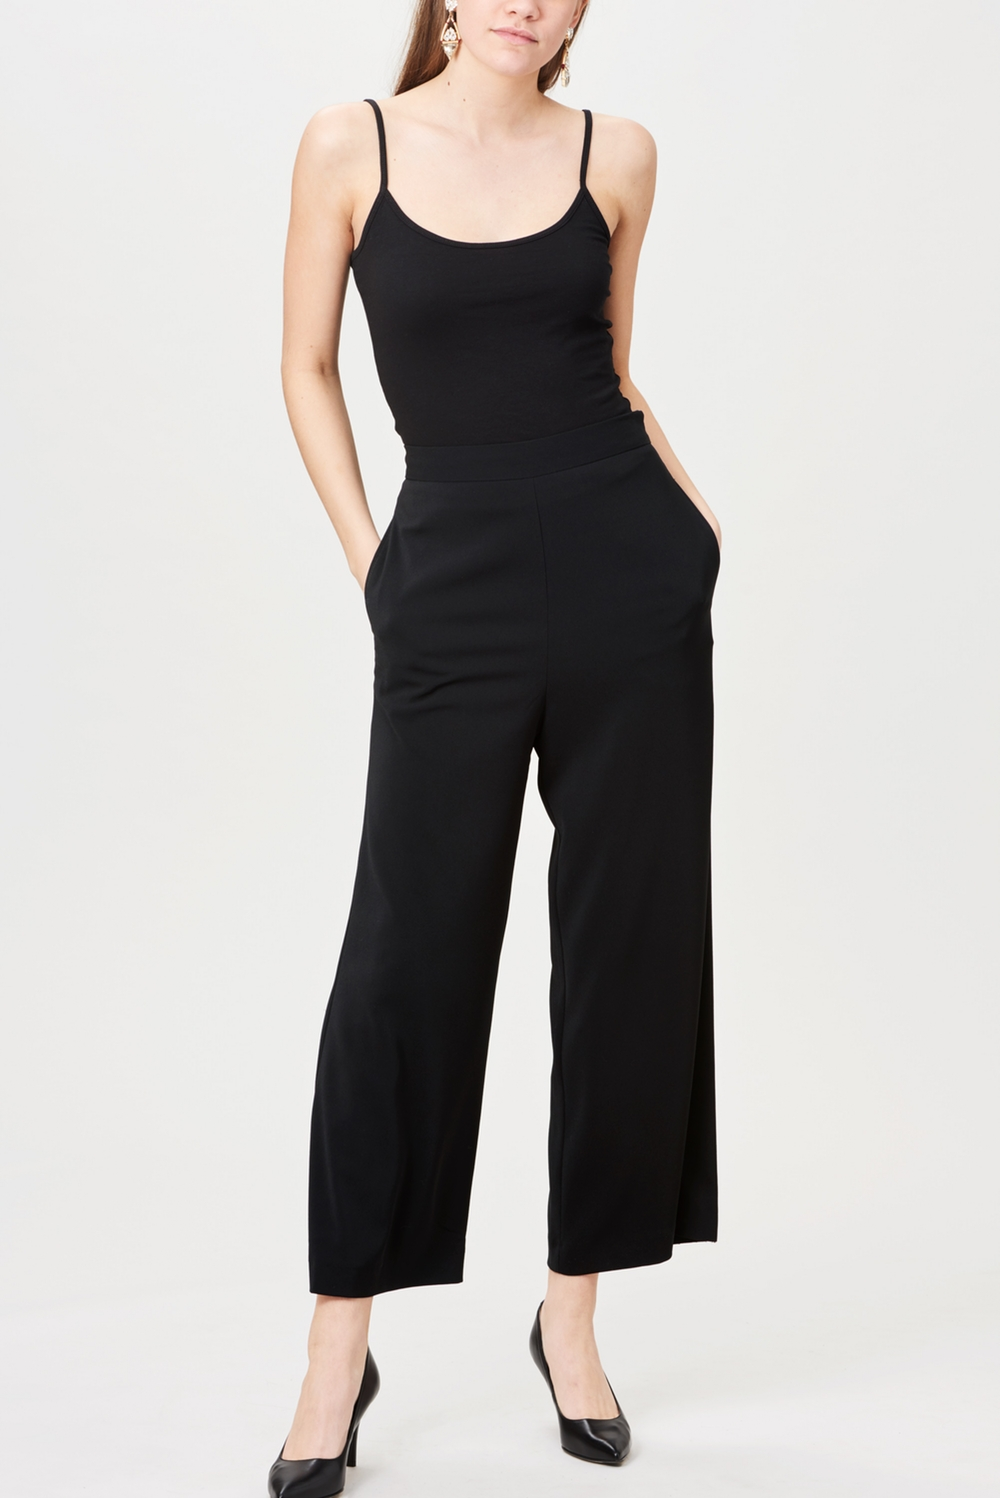 Billie & Me Justine Pants Black Crepe